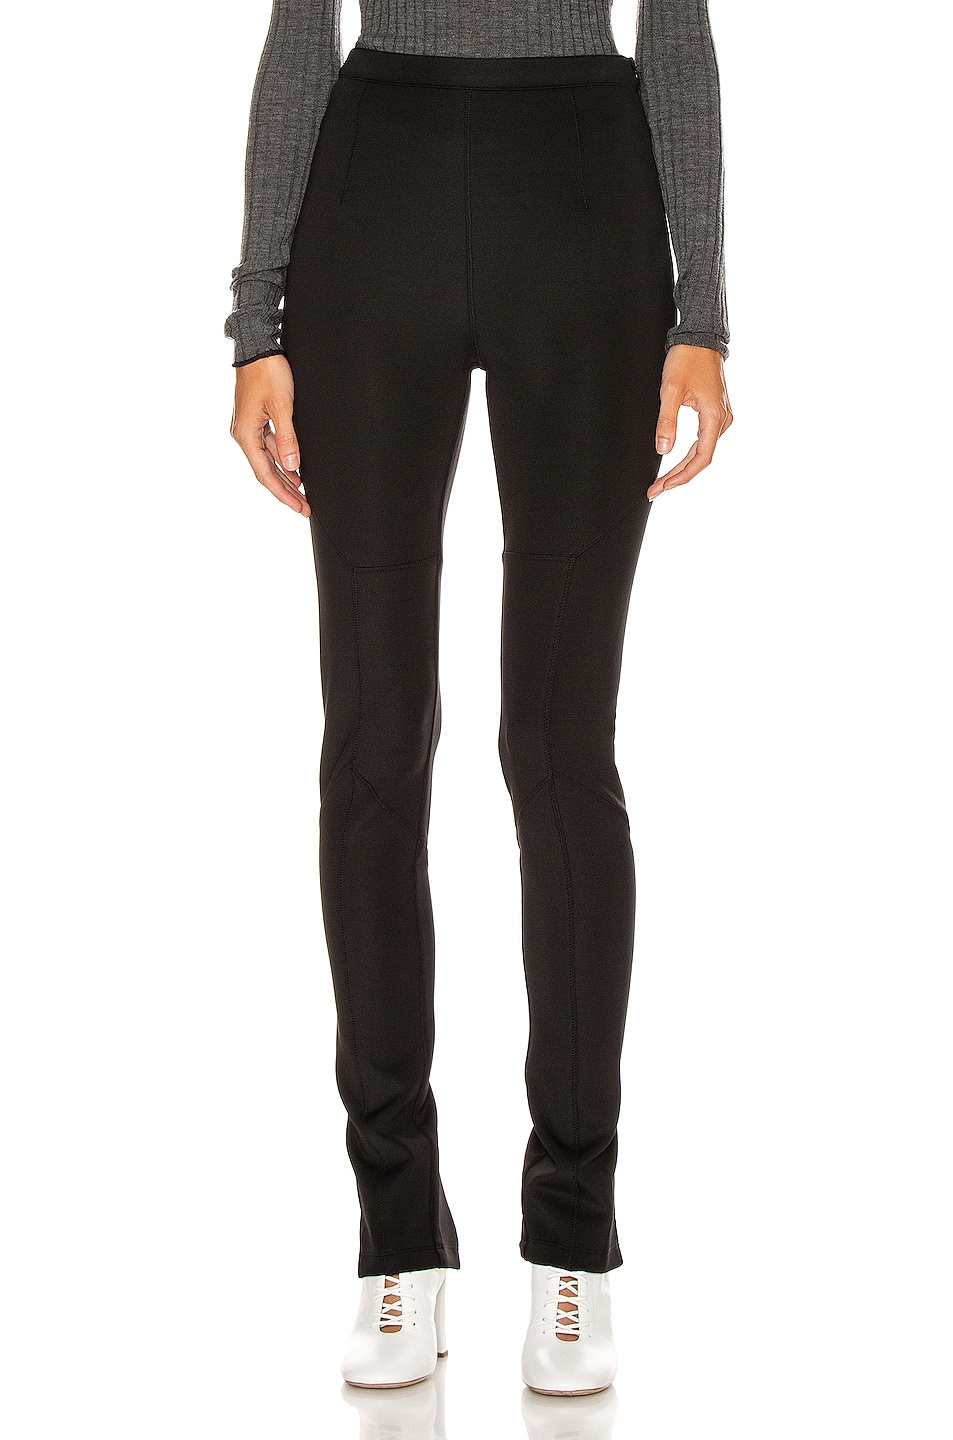 Image 1 of Proenza Schouler PSWL Straight Leg Pant in Black